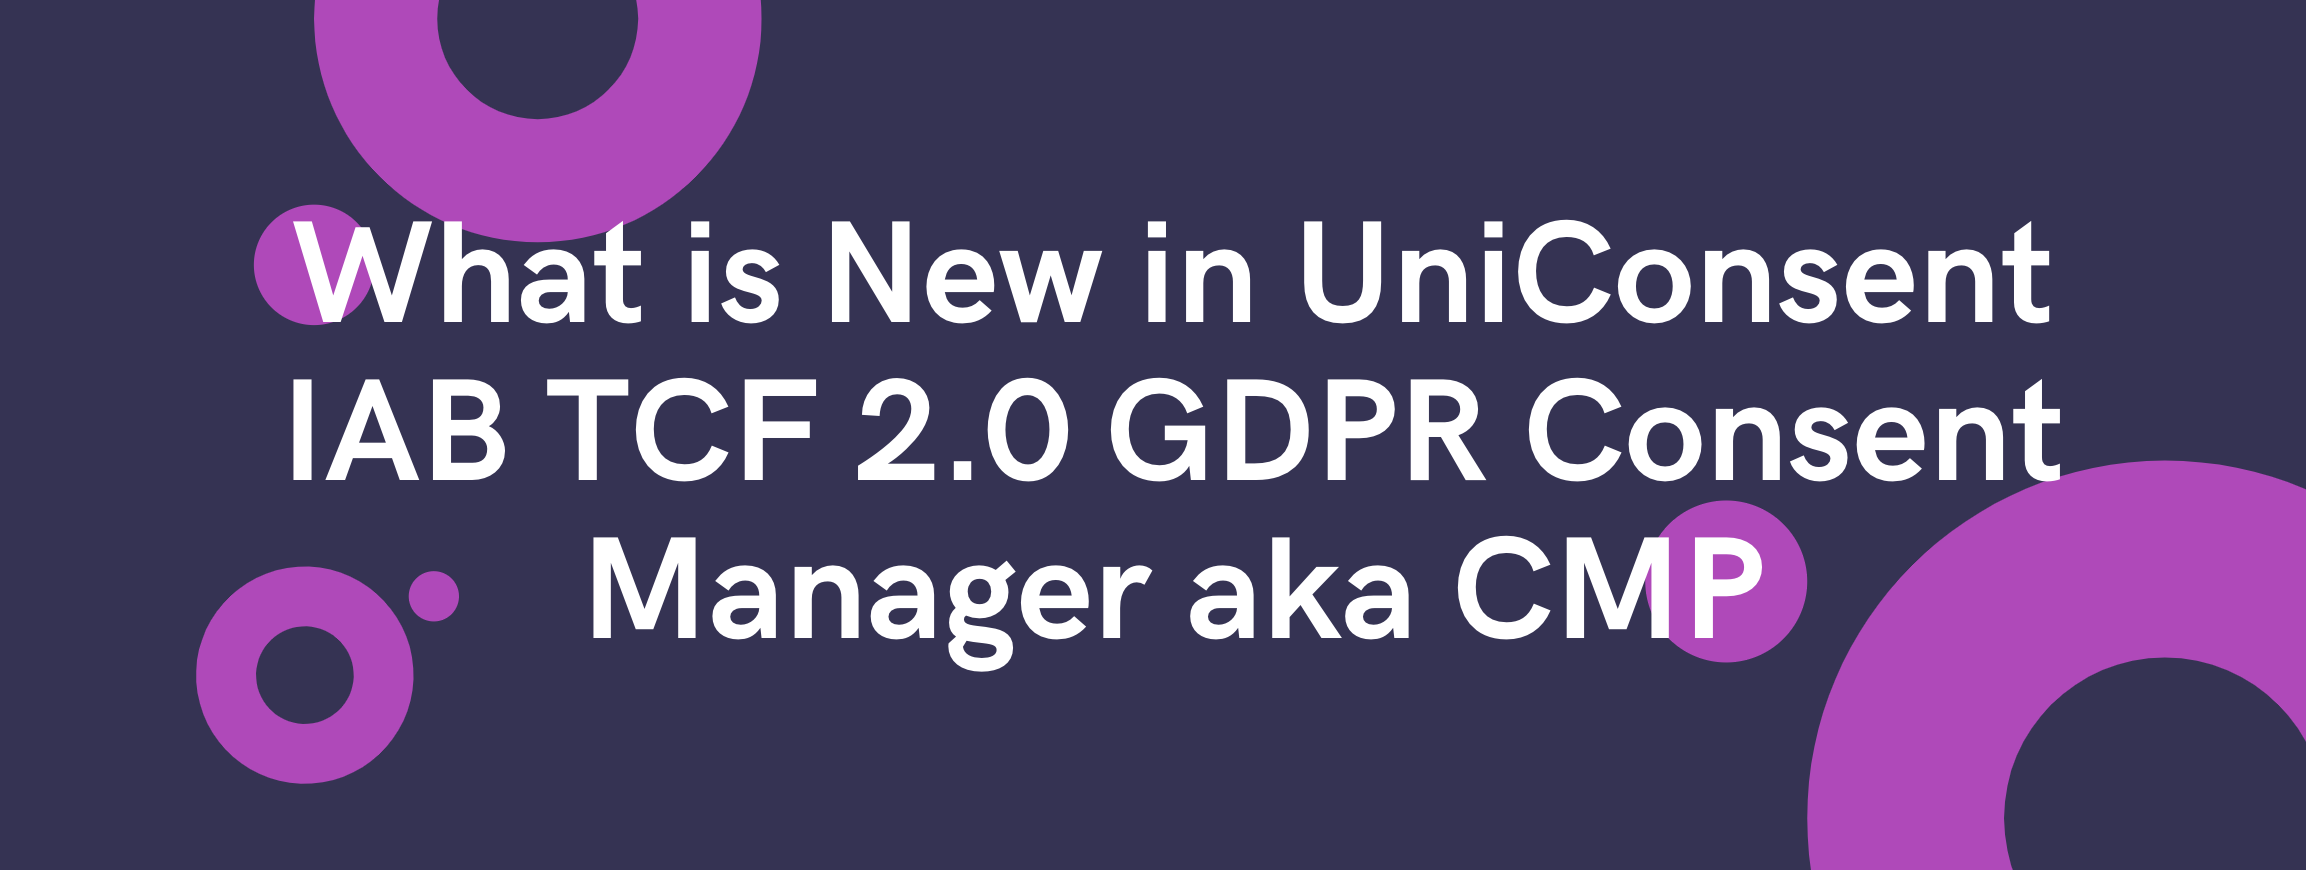 What is New in UniConsent IAB TCF 2.0 GDPR Consent Manager aka CMP